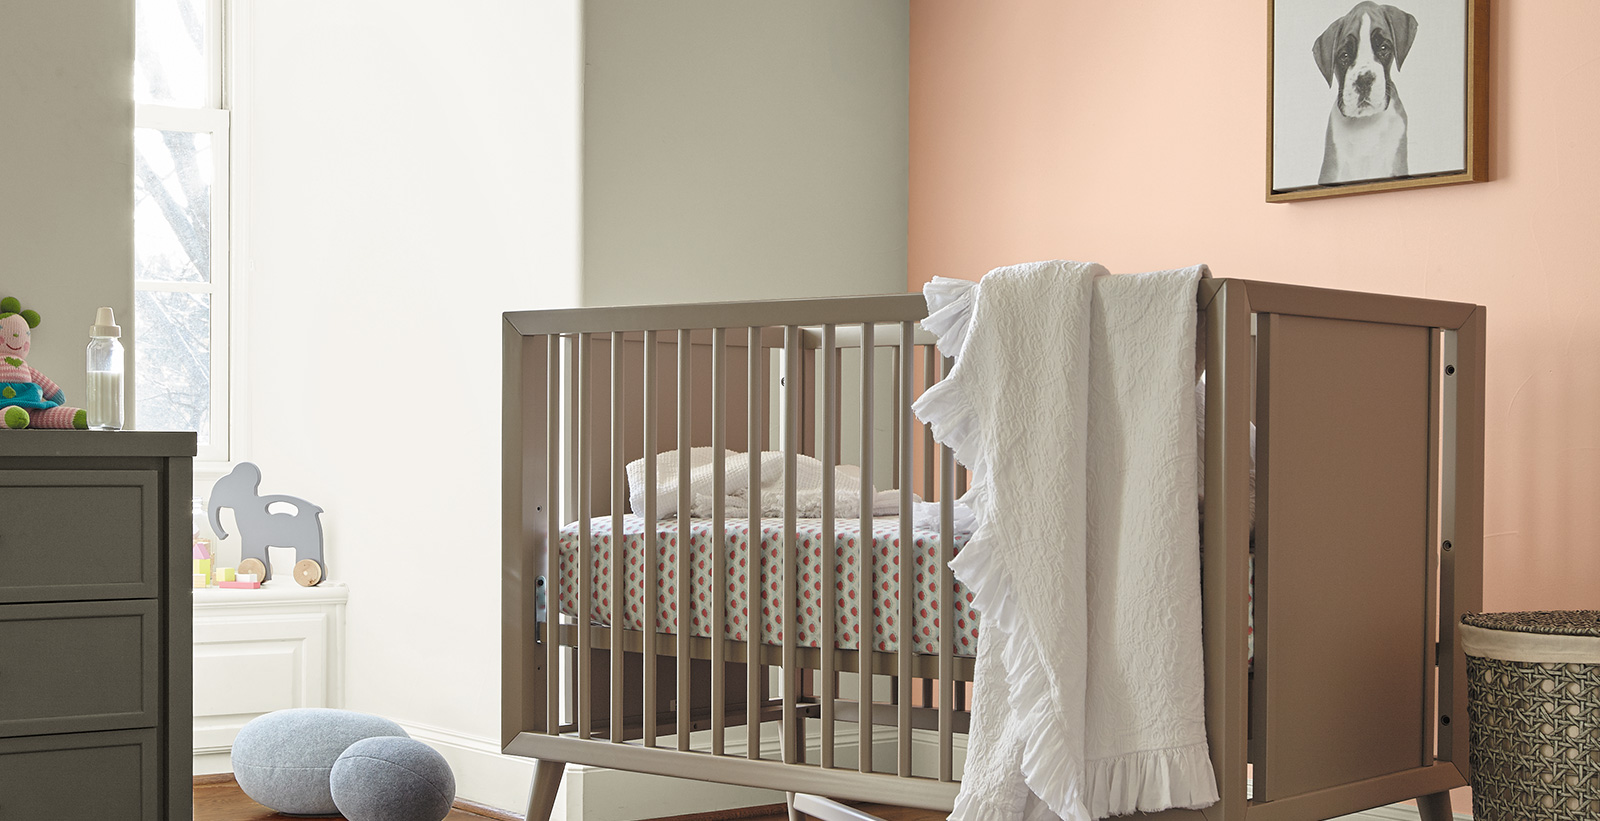 Inviting and friendly styled nursery youth room with white and light orange walls, white on the trim, and brown crib.